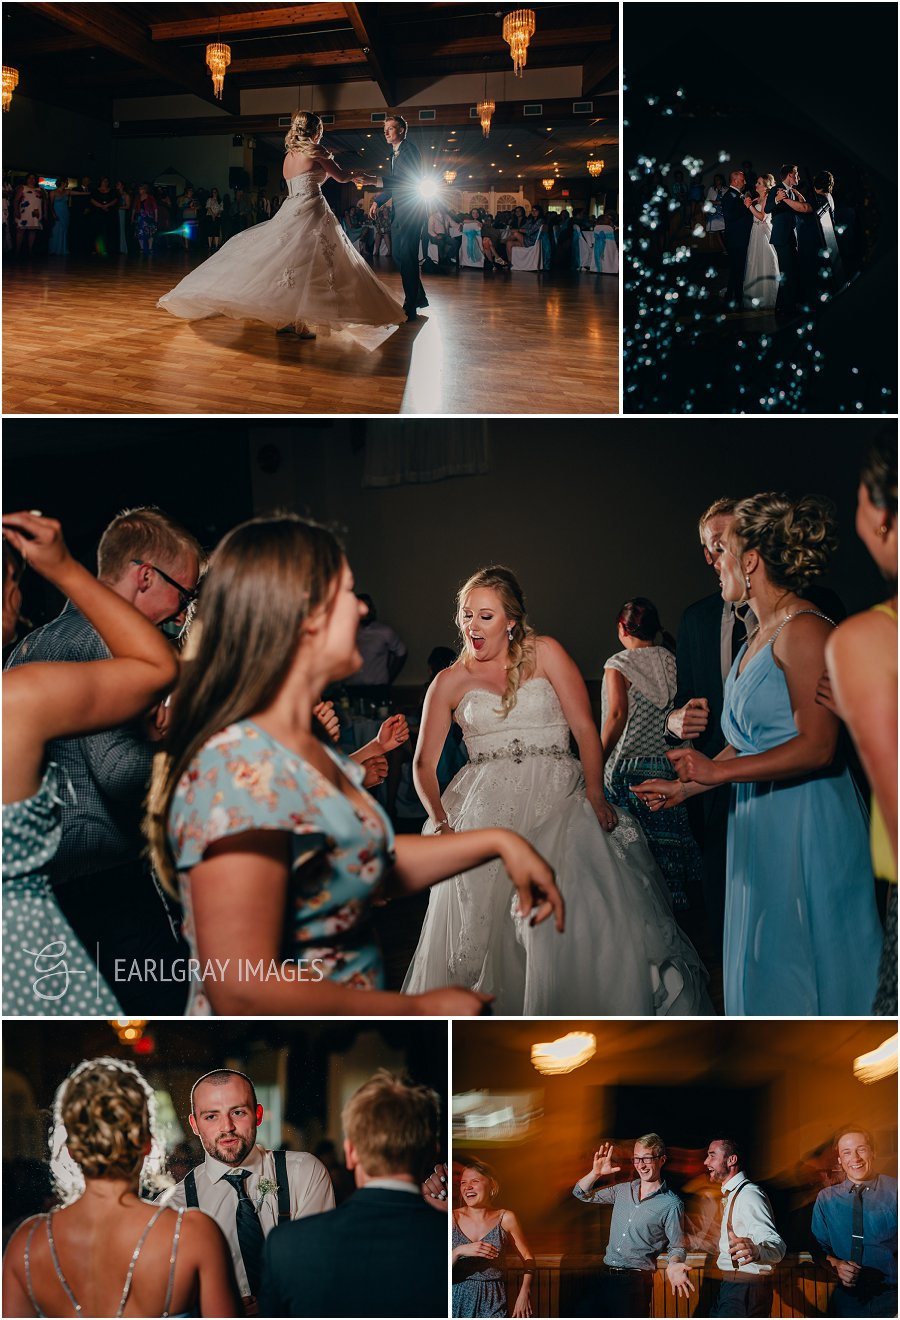 Polish Veterans Society ballroom wedding, Edmonton Wedding photography, Trinity Christian Reformed Church wedding